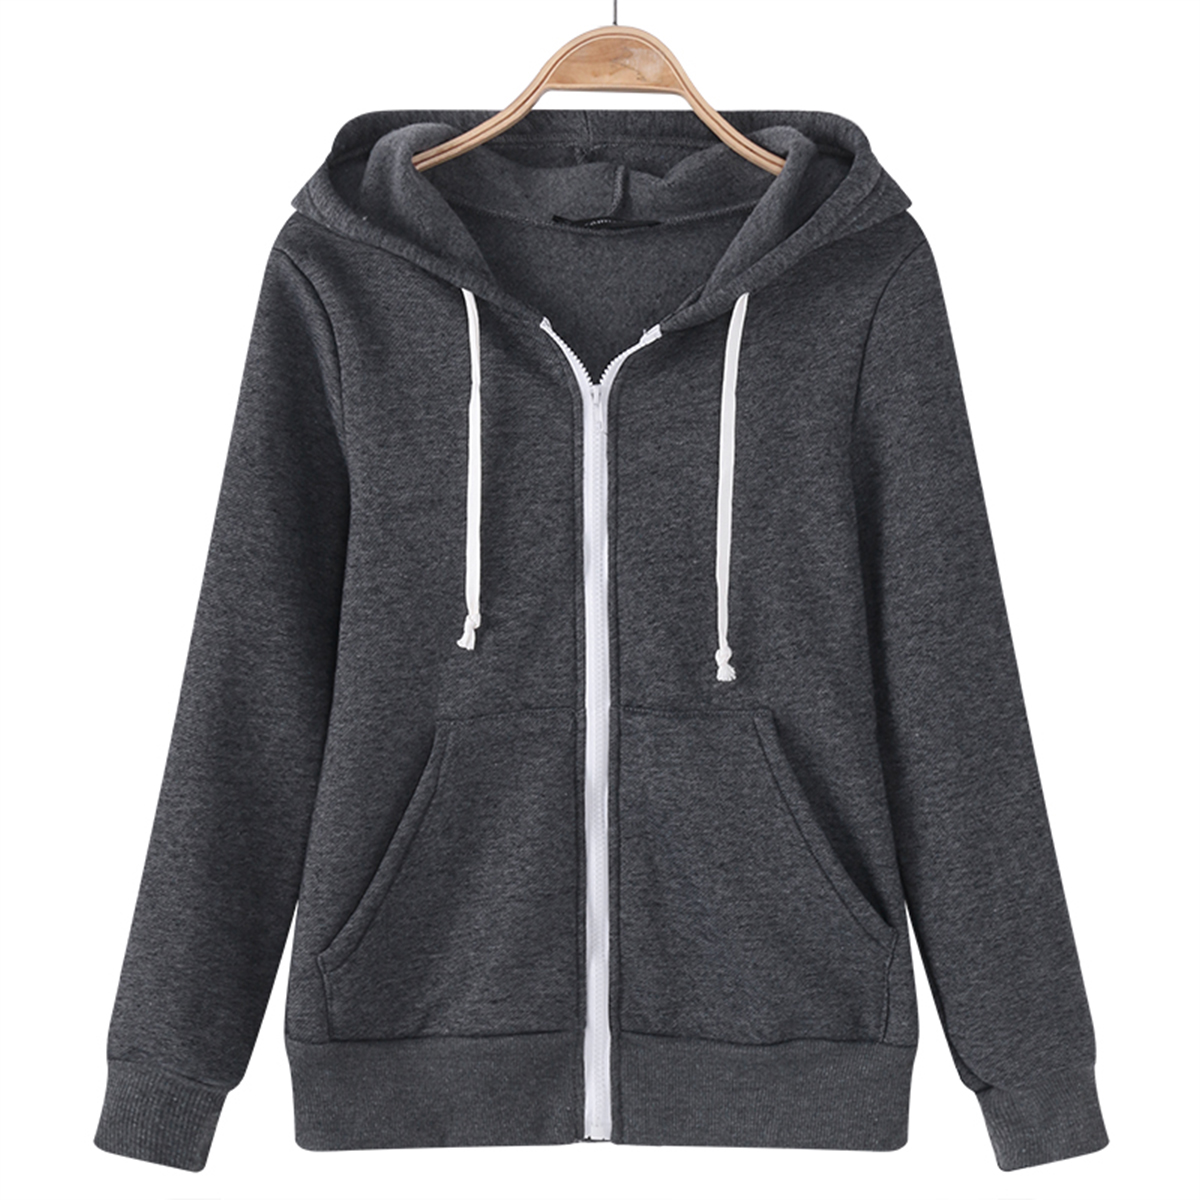 Plus Size 5XL Women Hoodies Sweatshirt Casual Streewear Long Sleeve Solid Sweatshirts Loose Hooded Zipper Warm Hoodies Overcoat